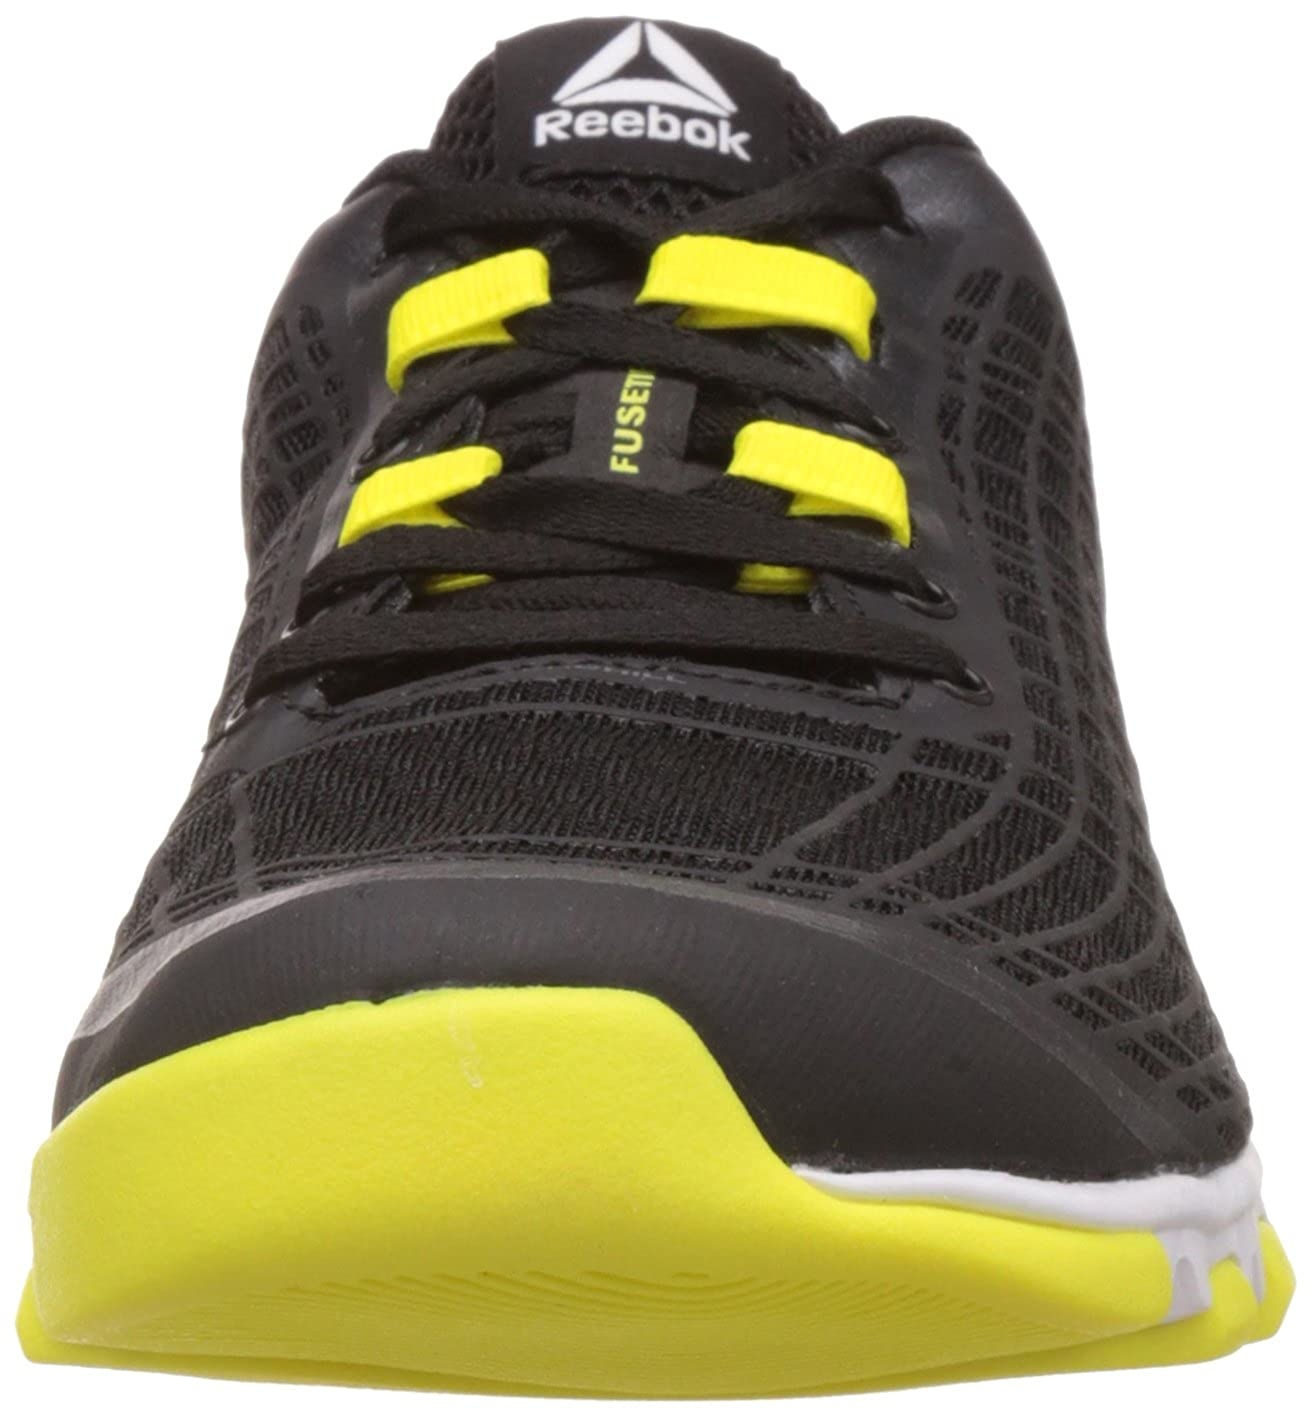 Reebok Men s Everchill Train Multisport Training Shoes  Buy Online at Low  Prices in India - Amazon.in 36e886a3e